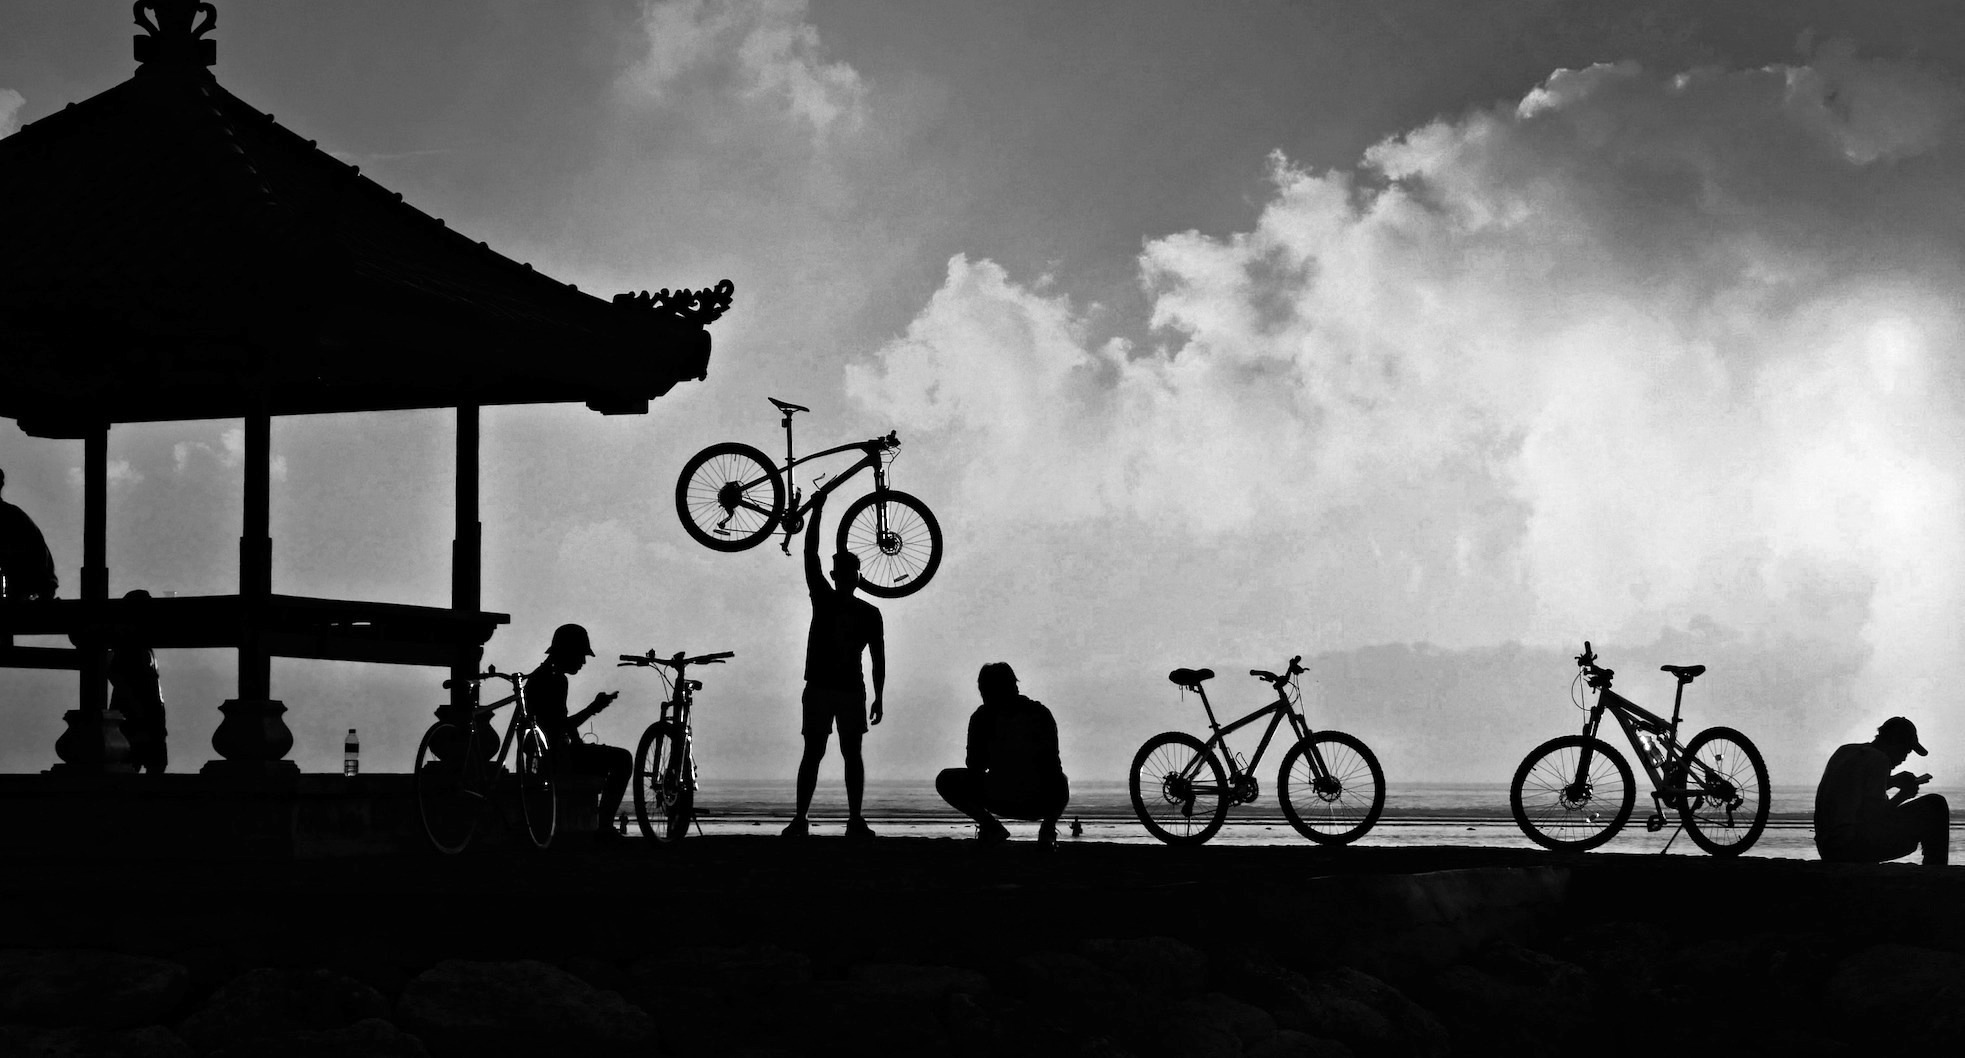 Strong man with bike by kevinmfairley